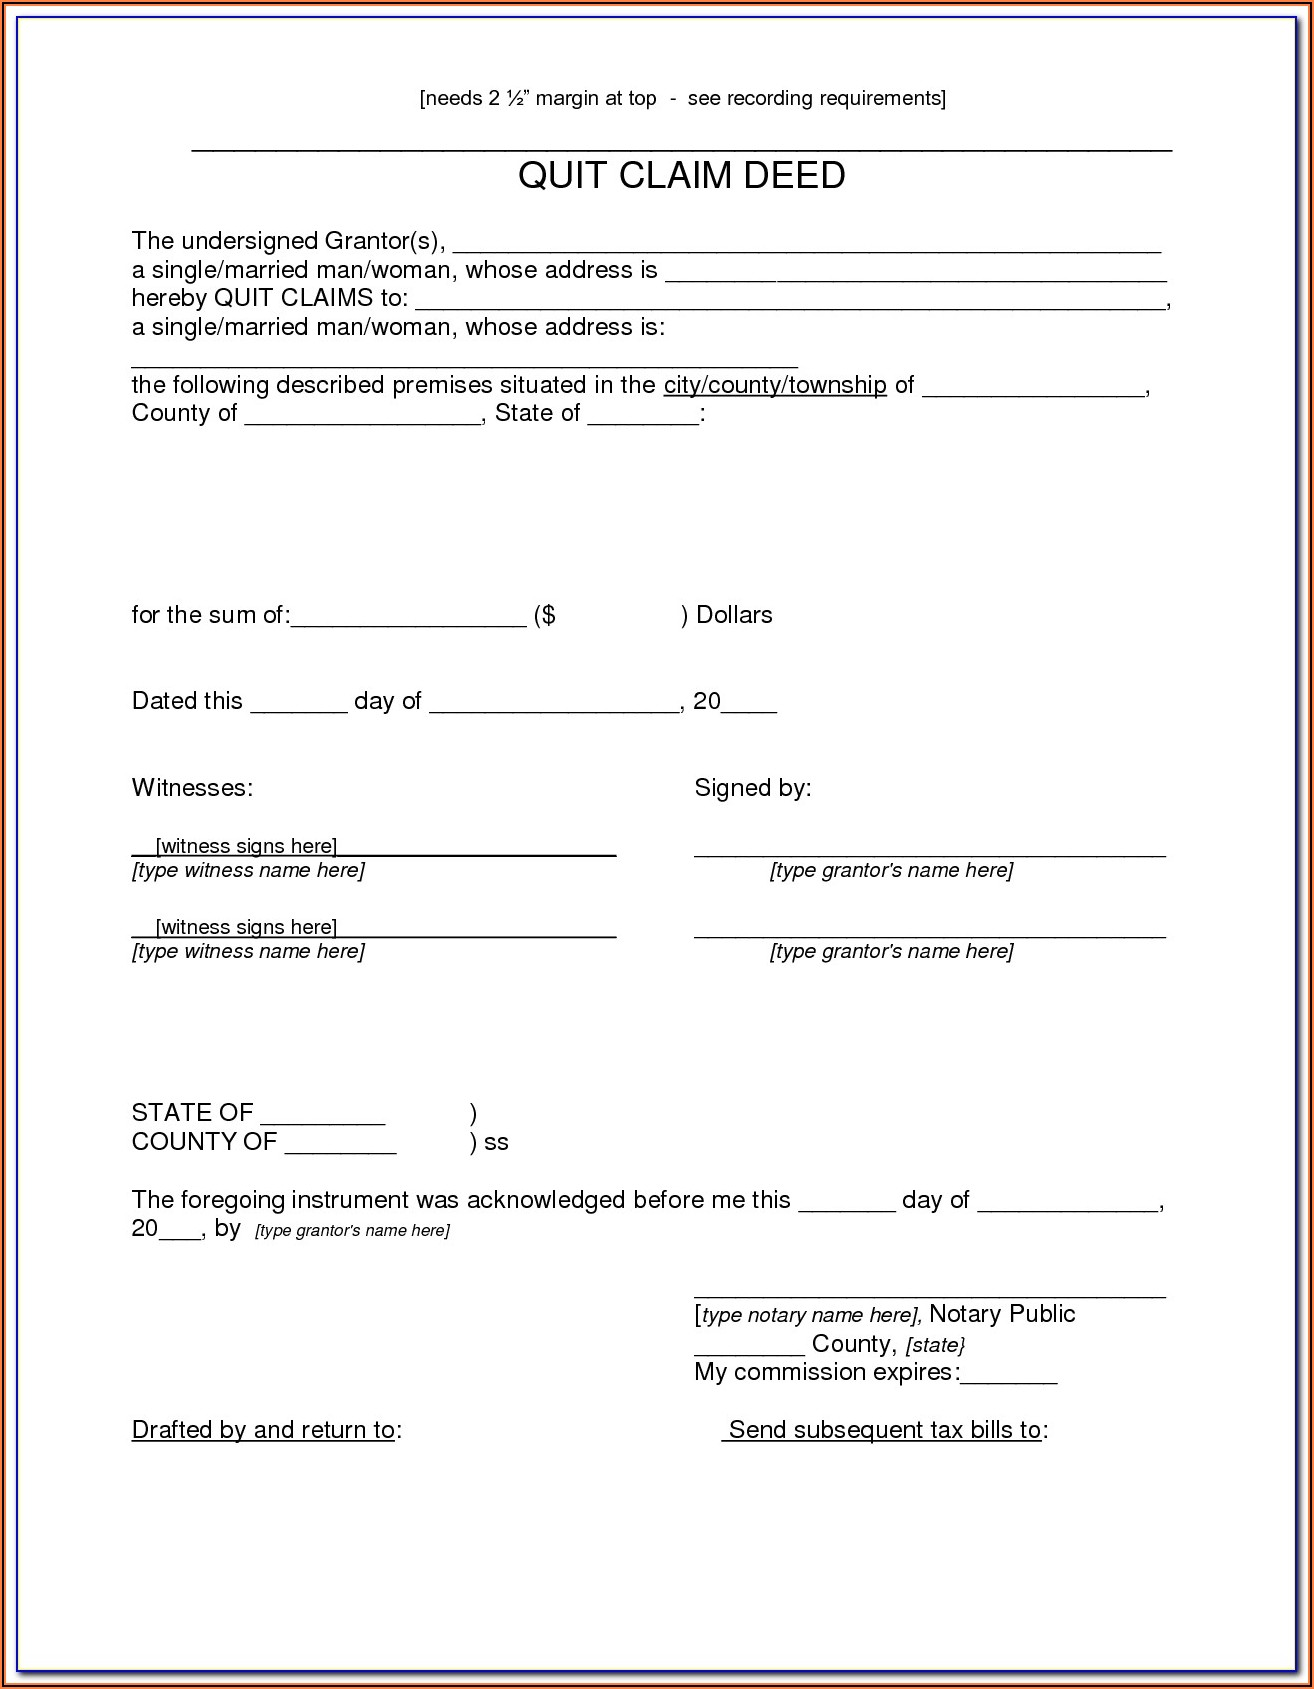 How Do I Fill Out A Quit Claim Deed Form